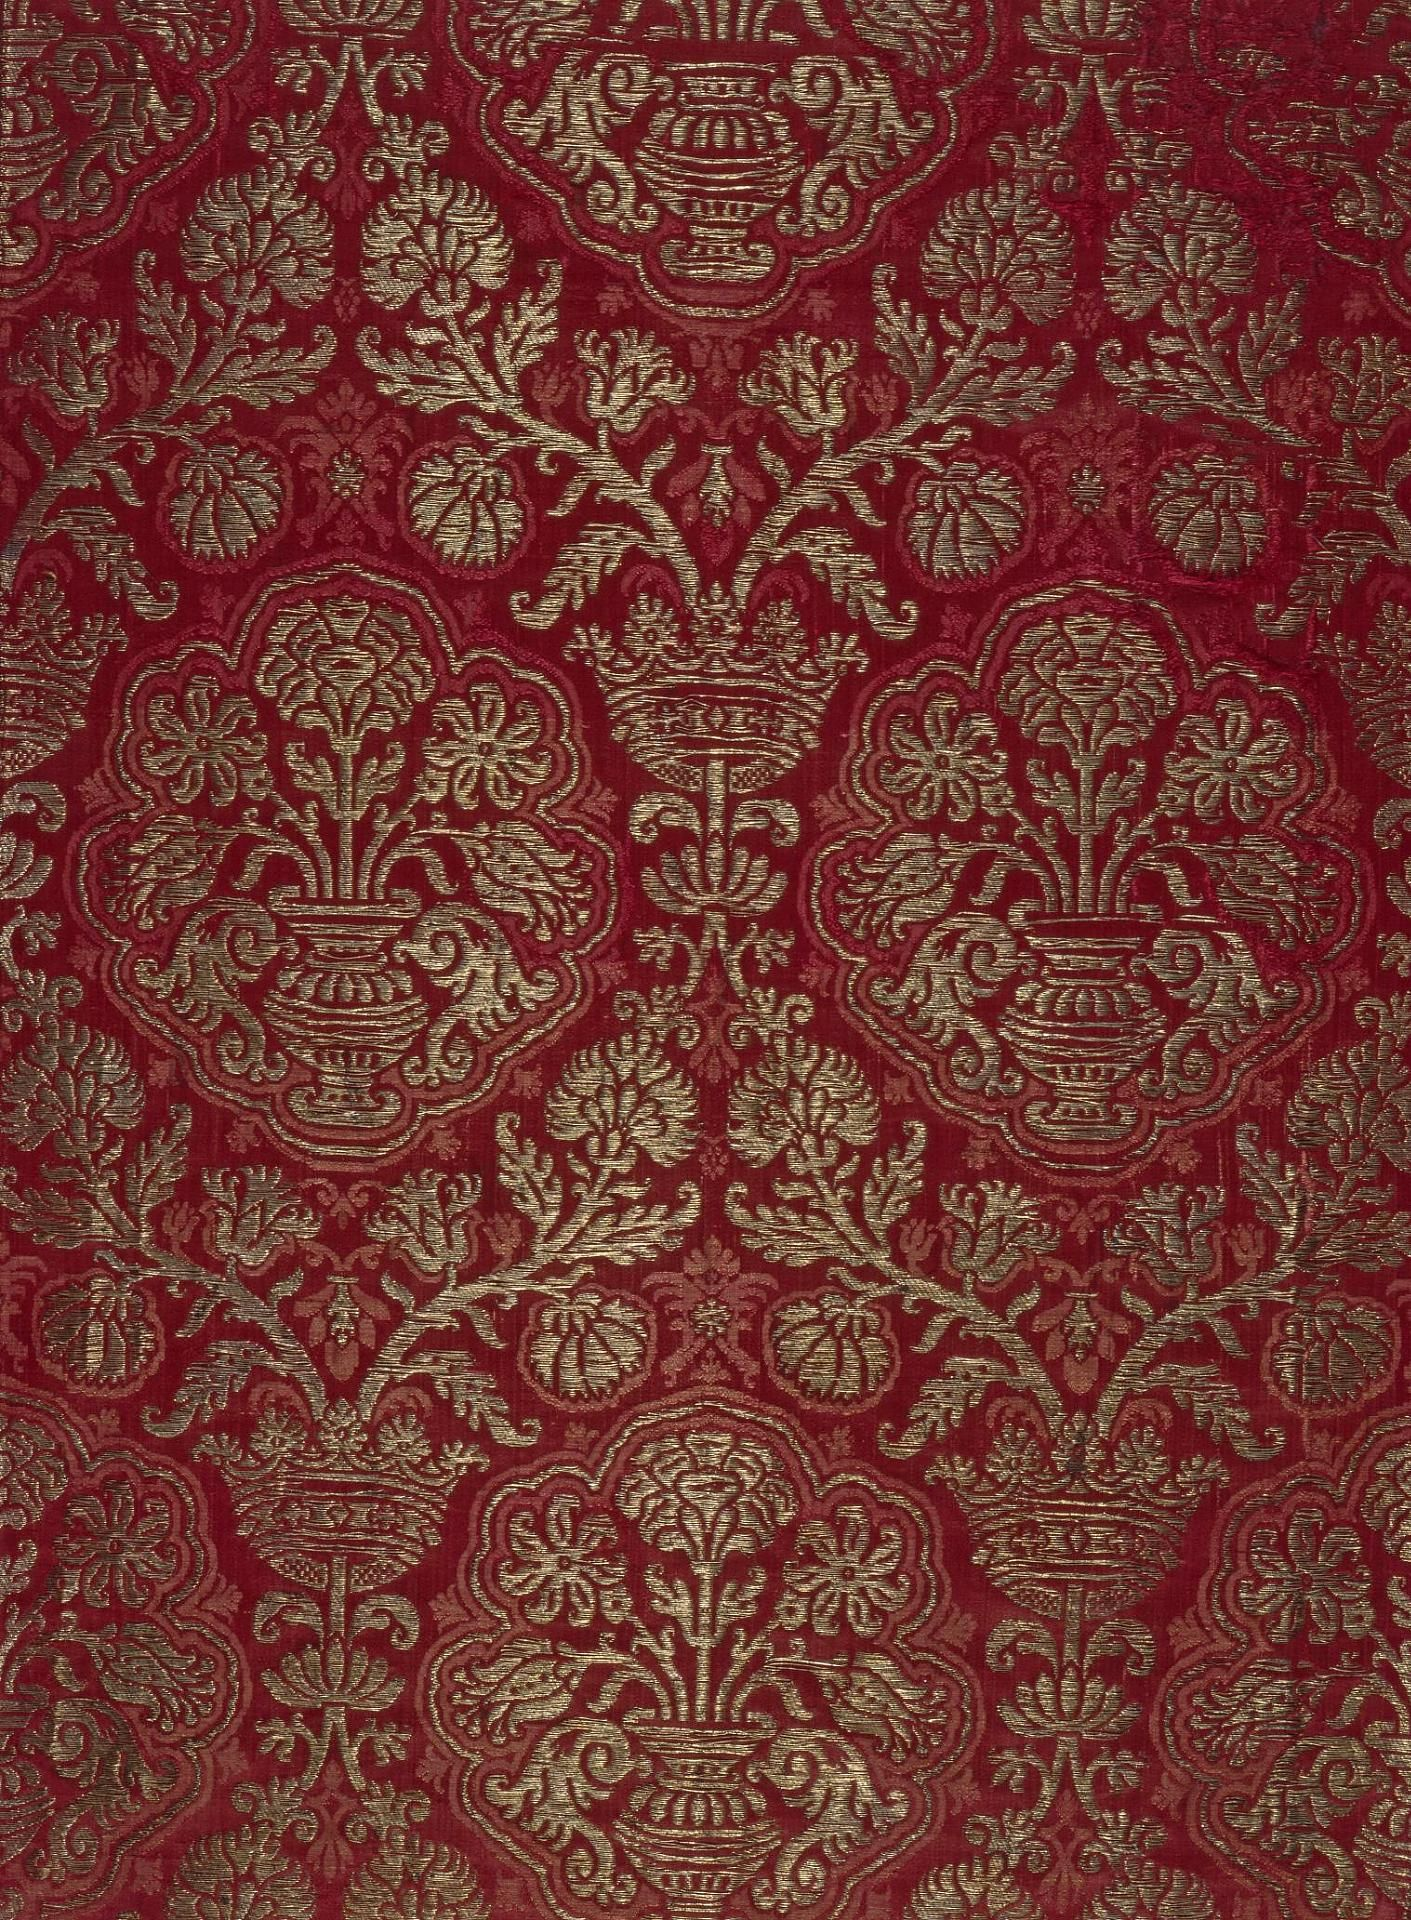 Brocade With A Pomegranate Pattern Italy Or Spain 16th Century Silk With Gold Thread The Hermitage Invent Antique Textiles Tapestry Textures Patterns